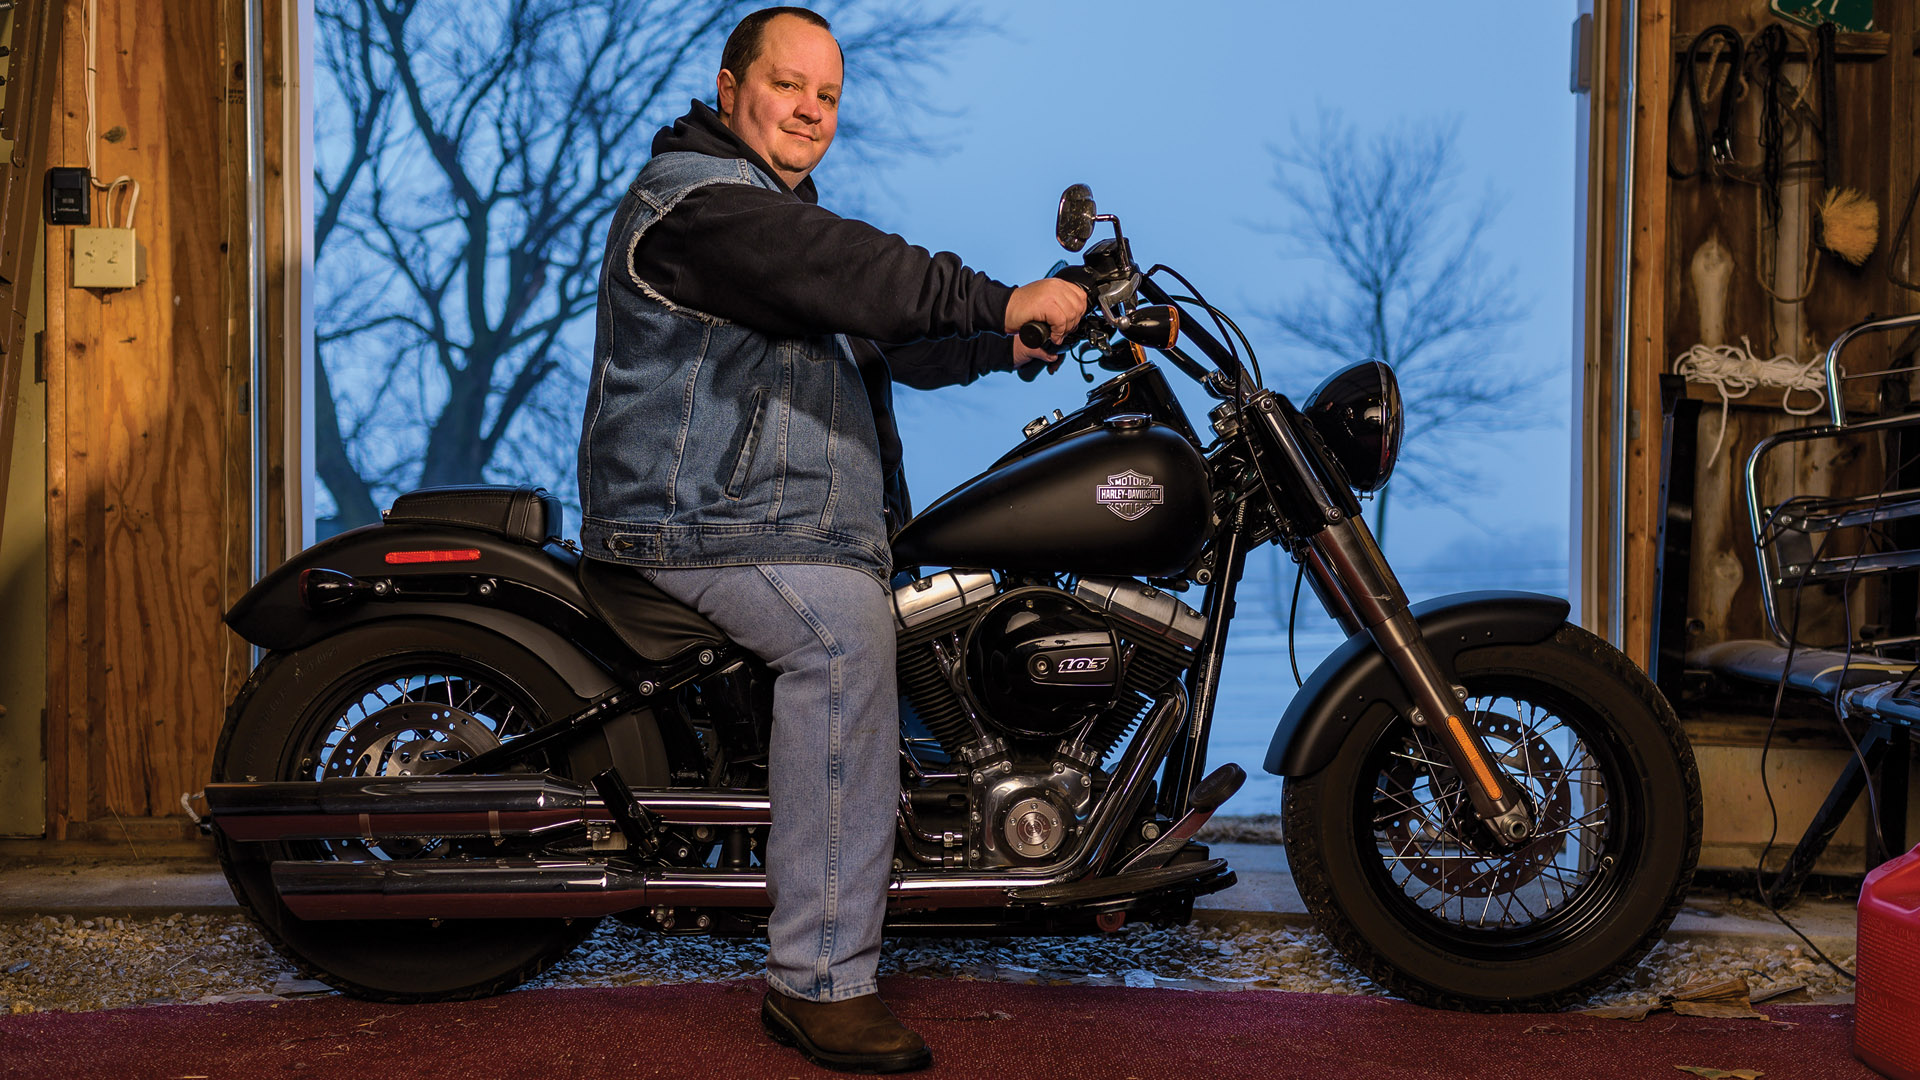 Photo of Leigh Wade, UNIX Administrator, Stormont Vail Health, on his motorcycle.